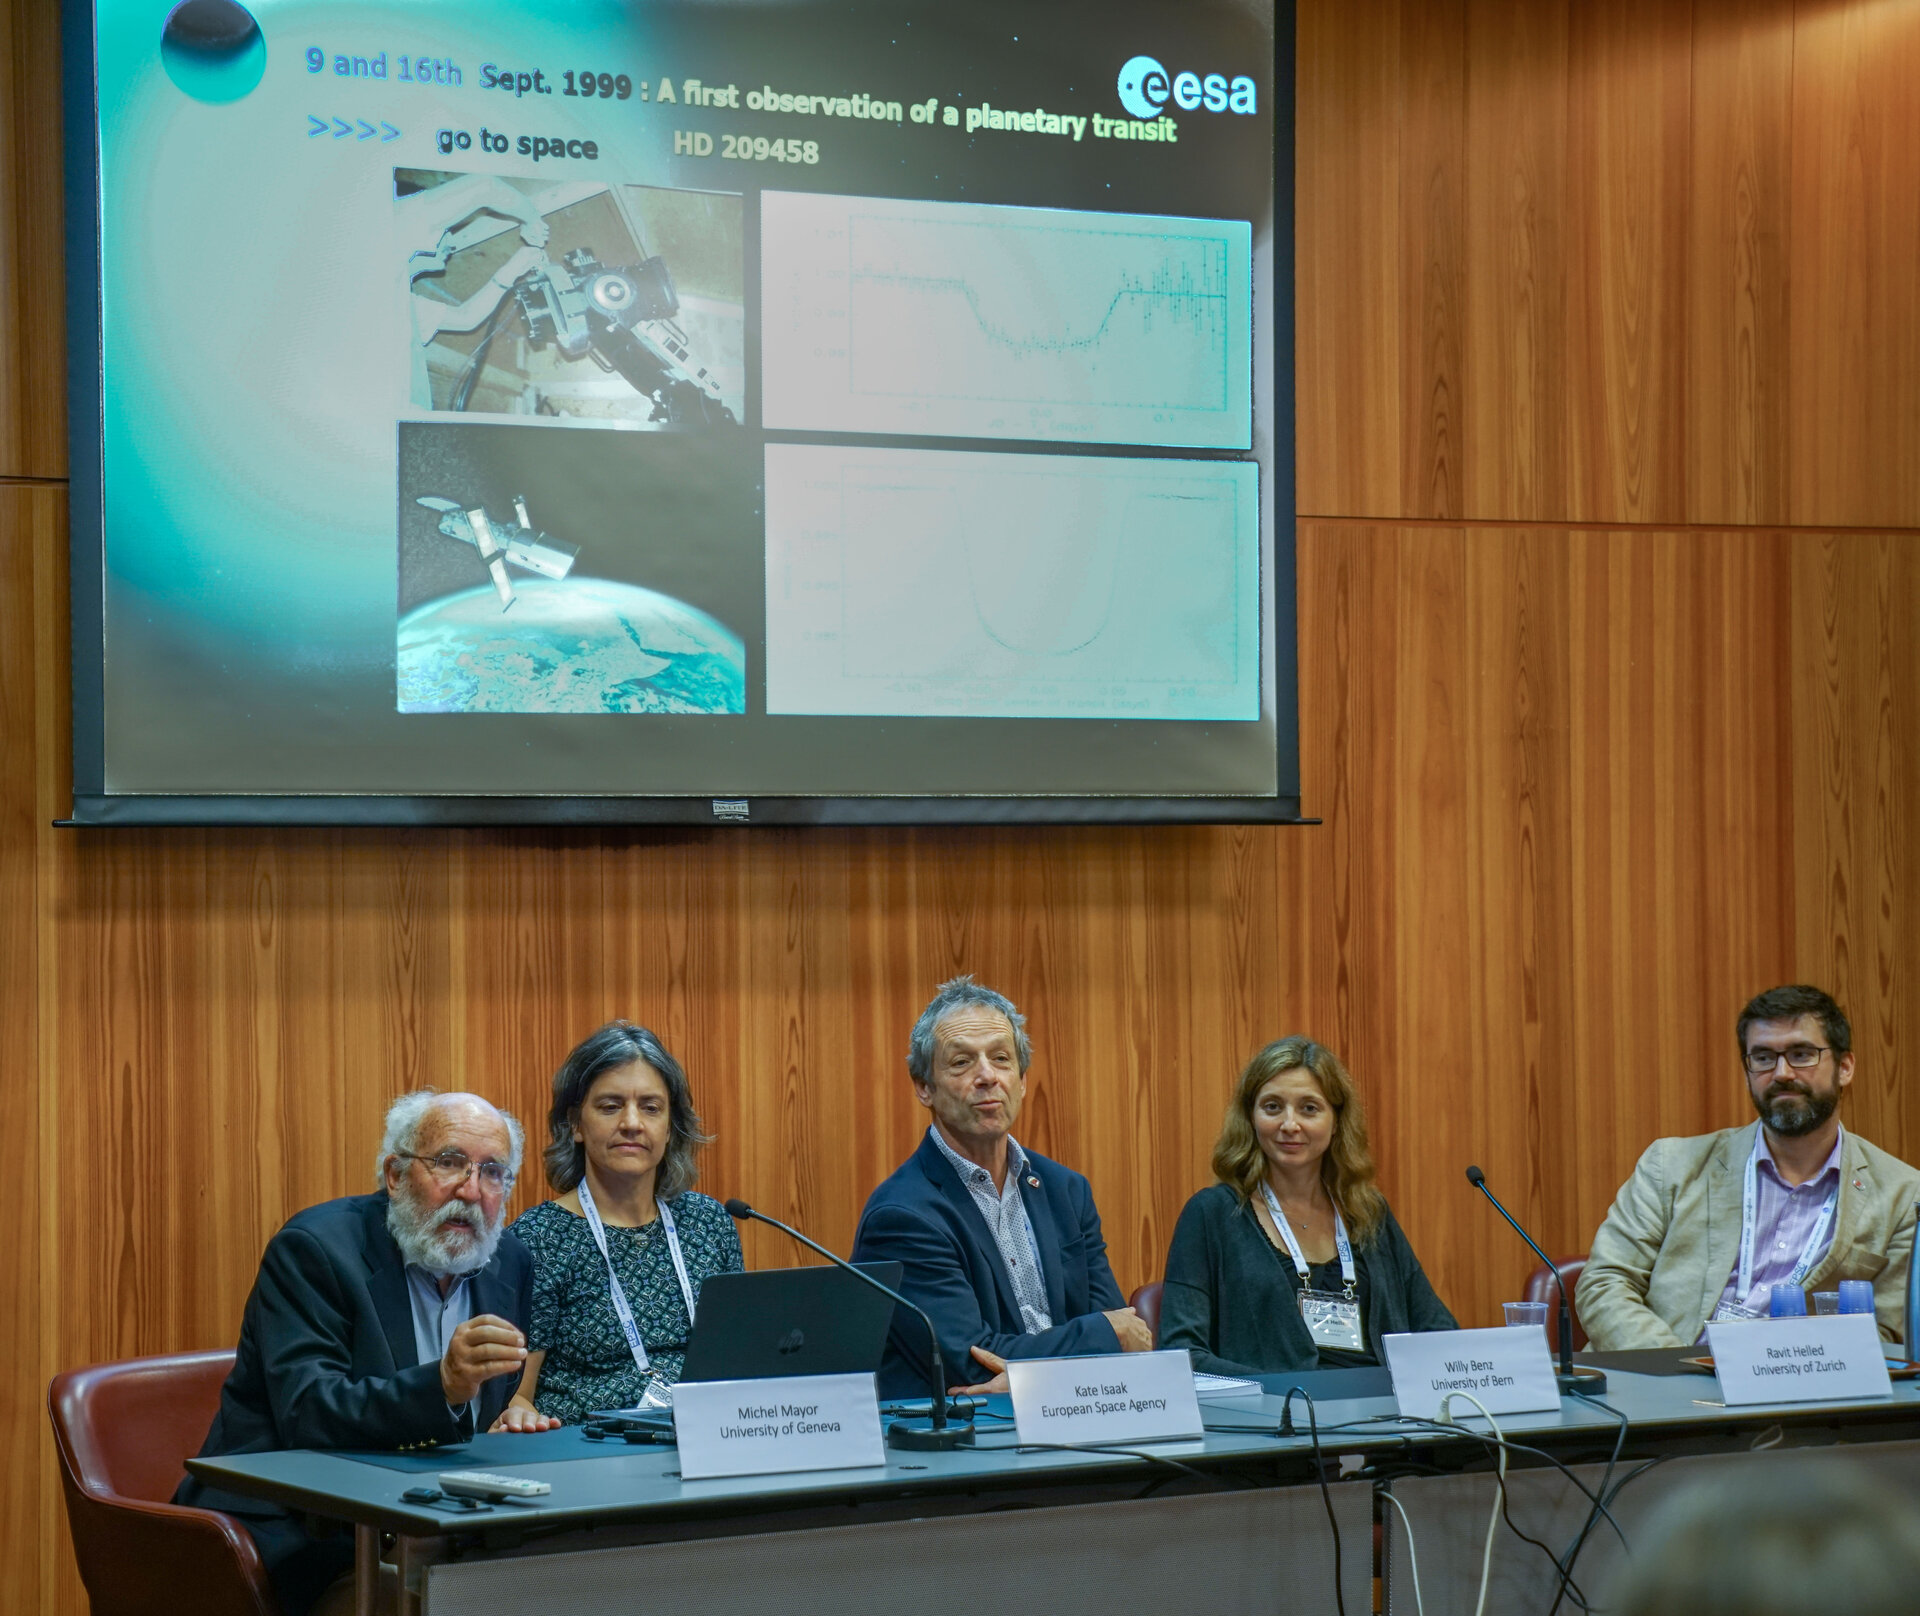 Exoplanet scientists at Cheops media briefing